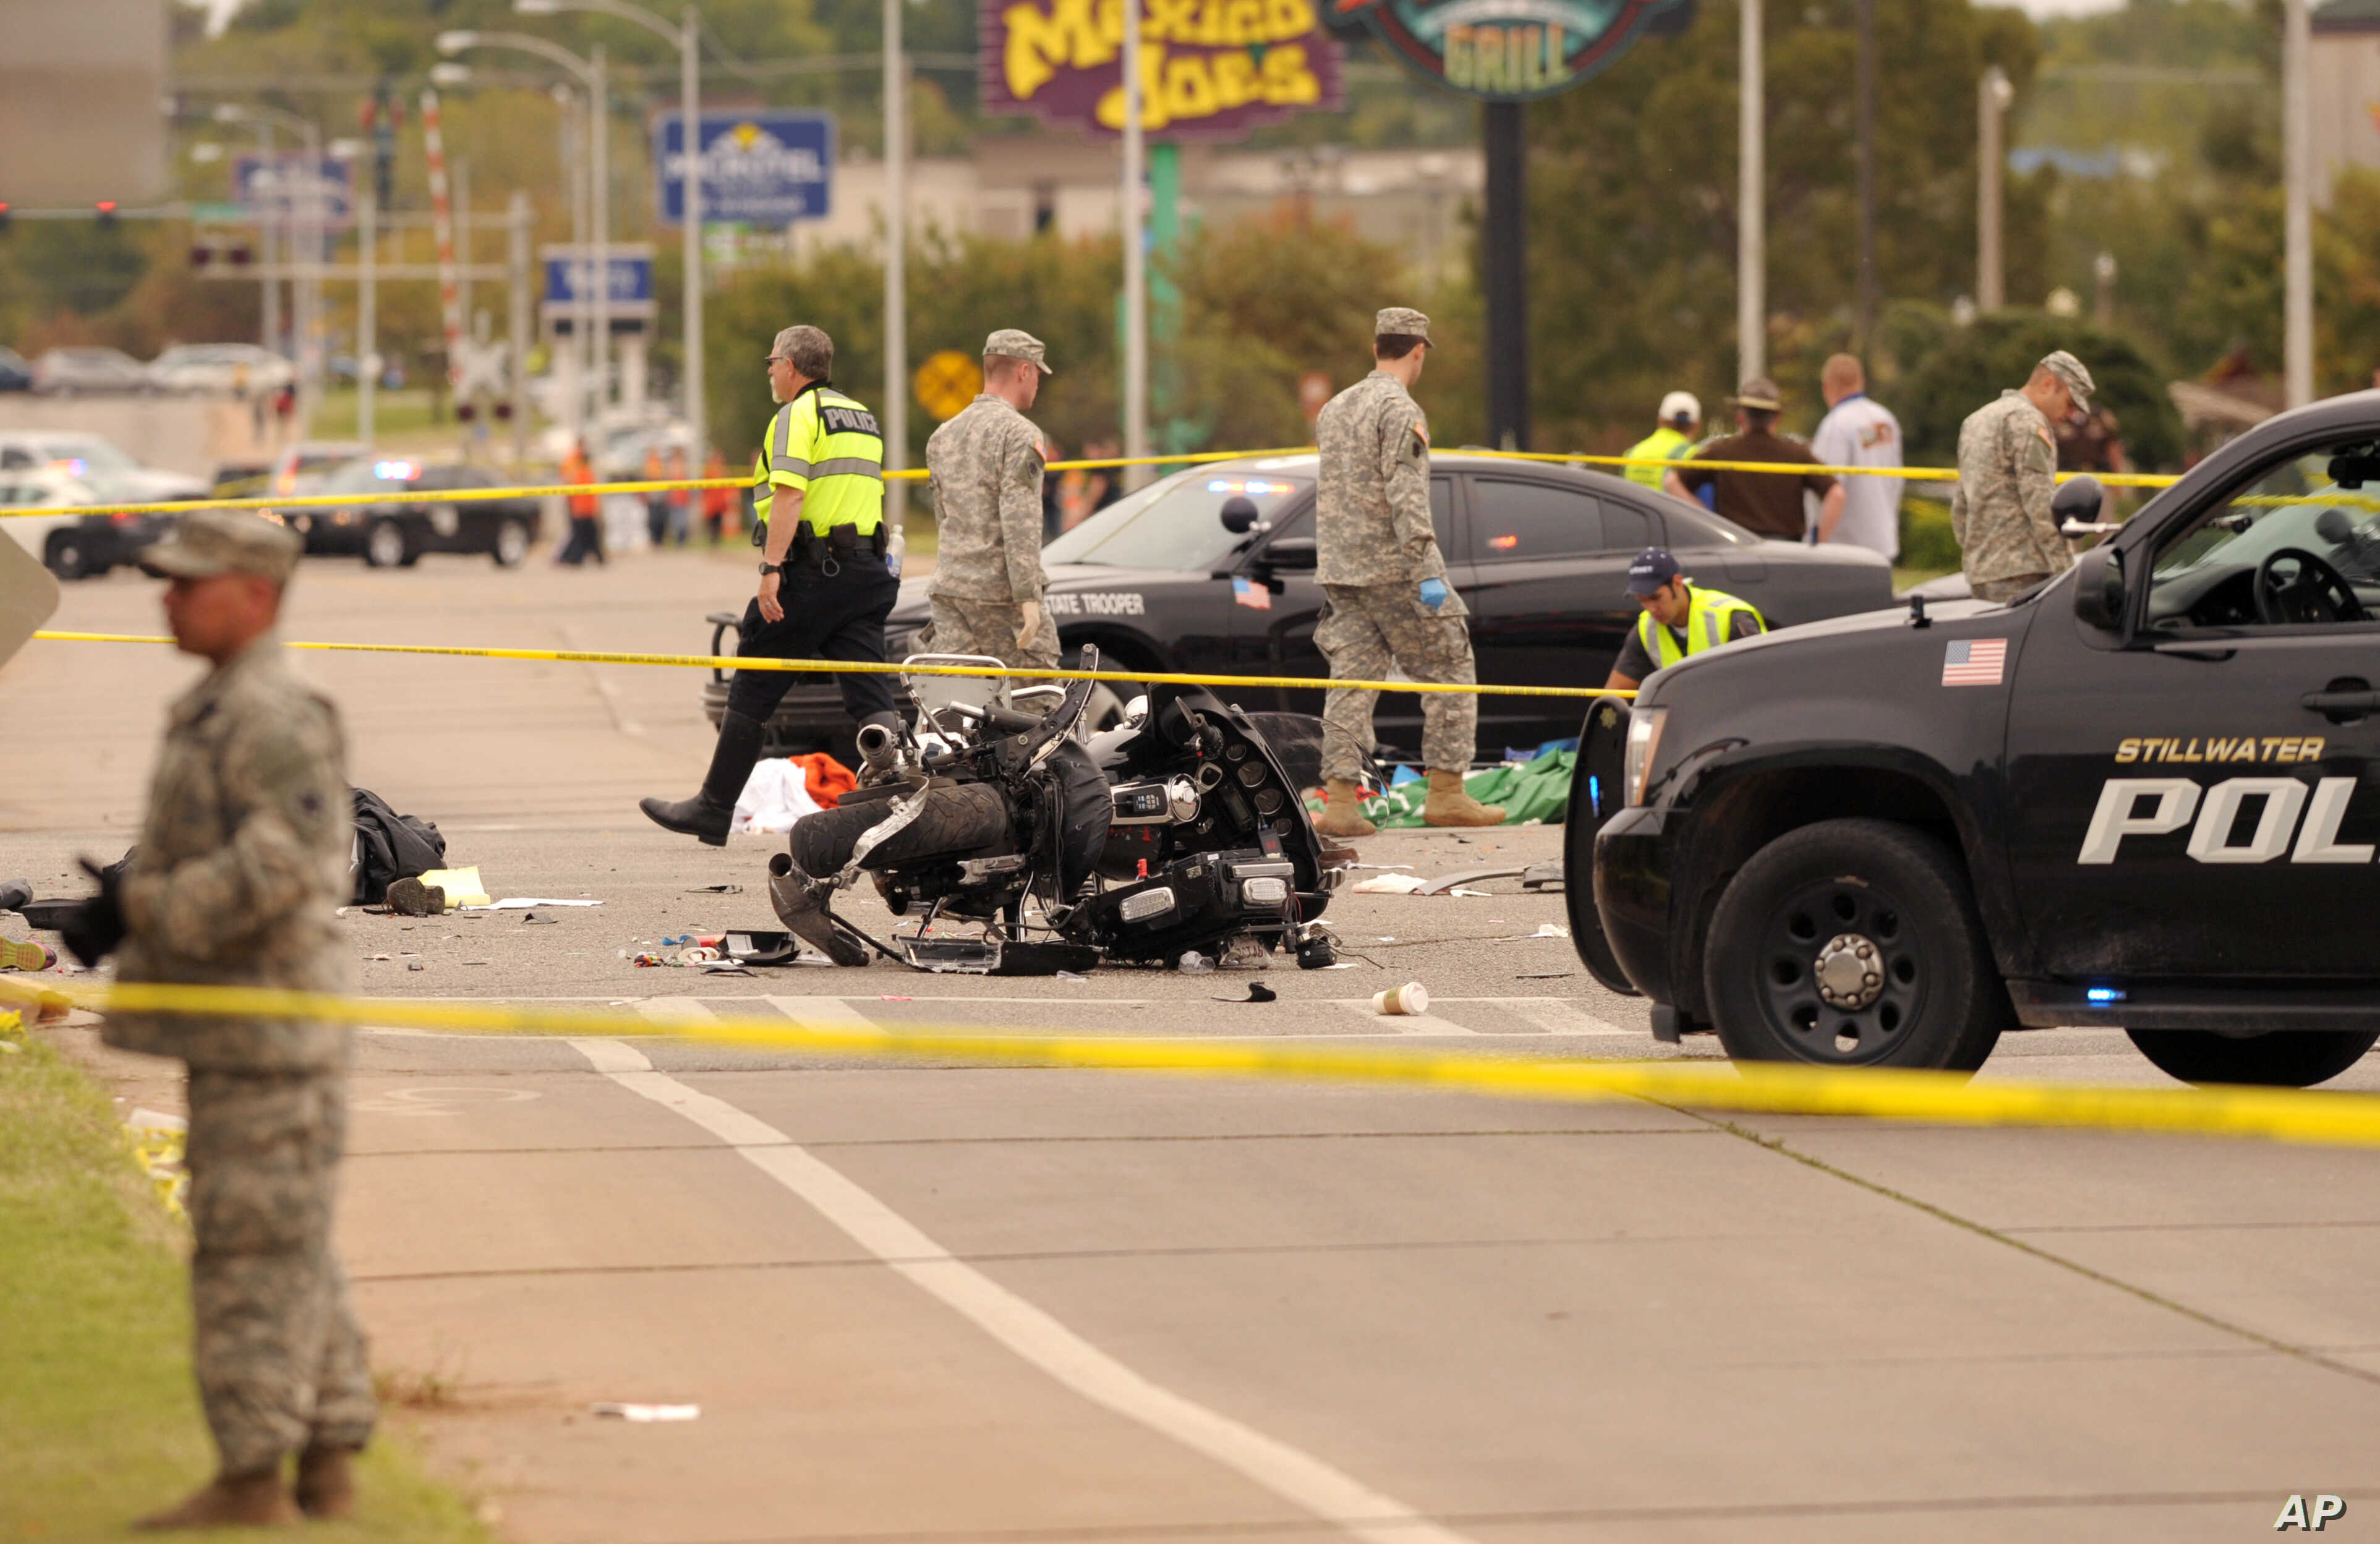 A damaged police motorcycle rests in the intersection after a vehicle crashed into a crowd of spectators during the Oklahoma State University homecoming parade, causing multiple injuries and deaths, in Stillwater, Okla., Oct. 24, 2015.